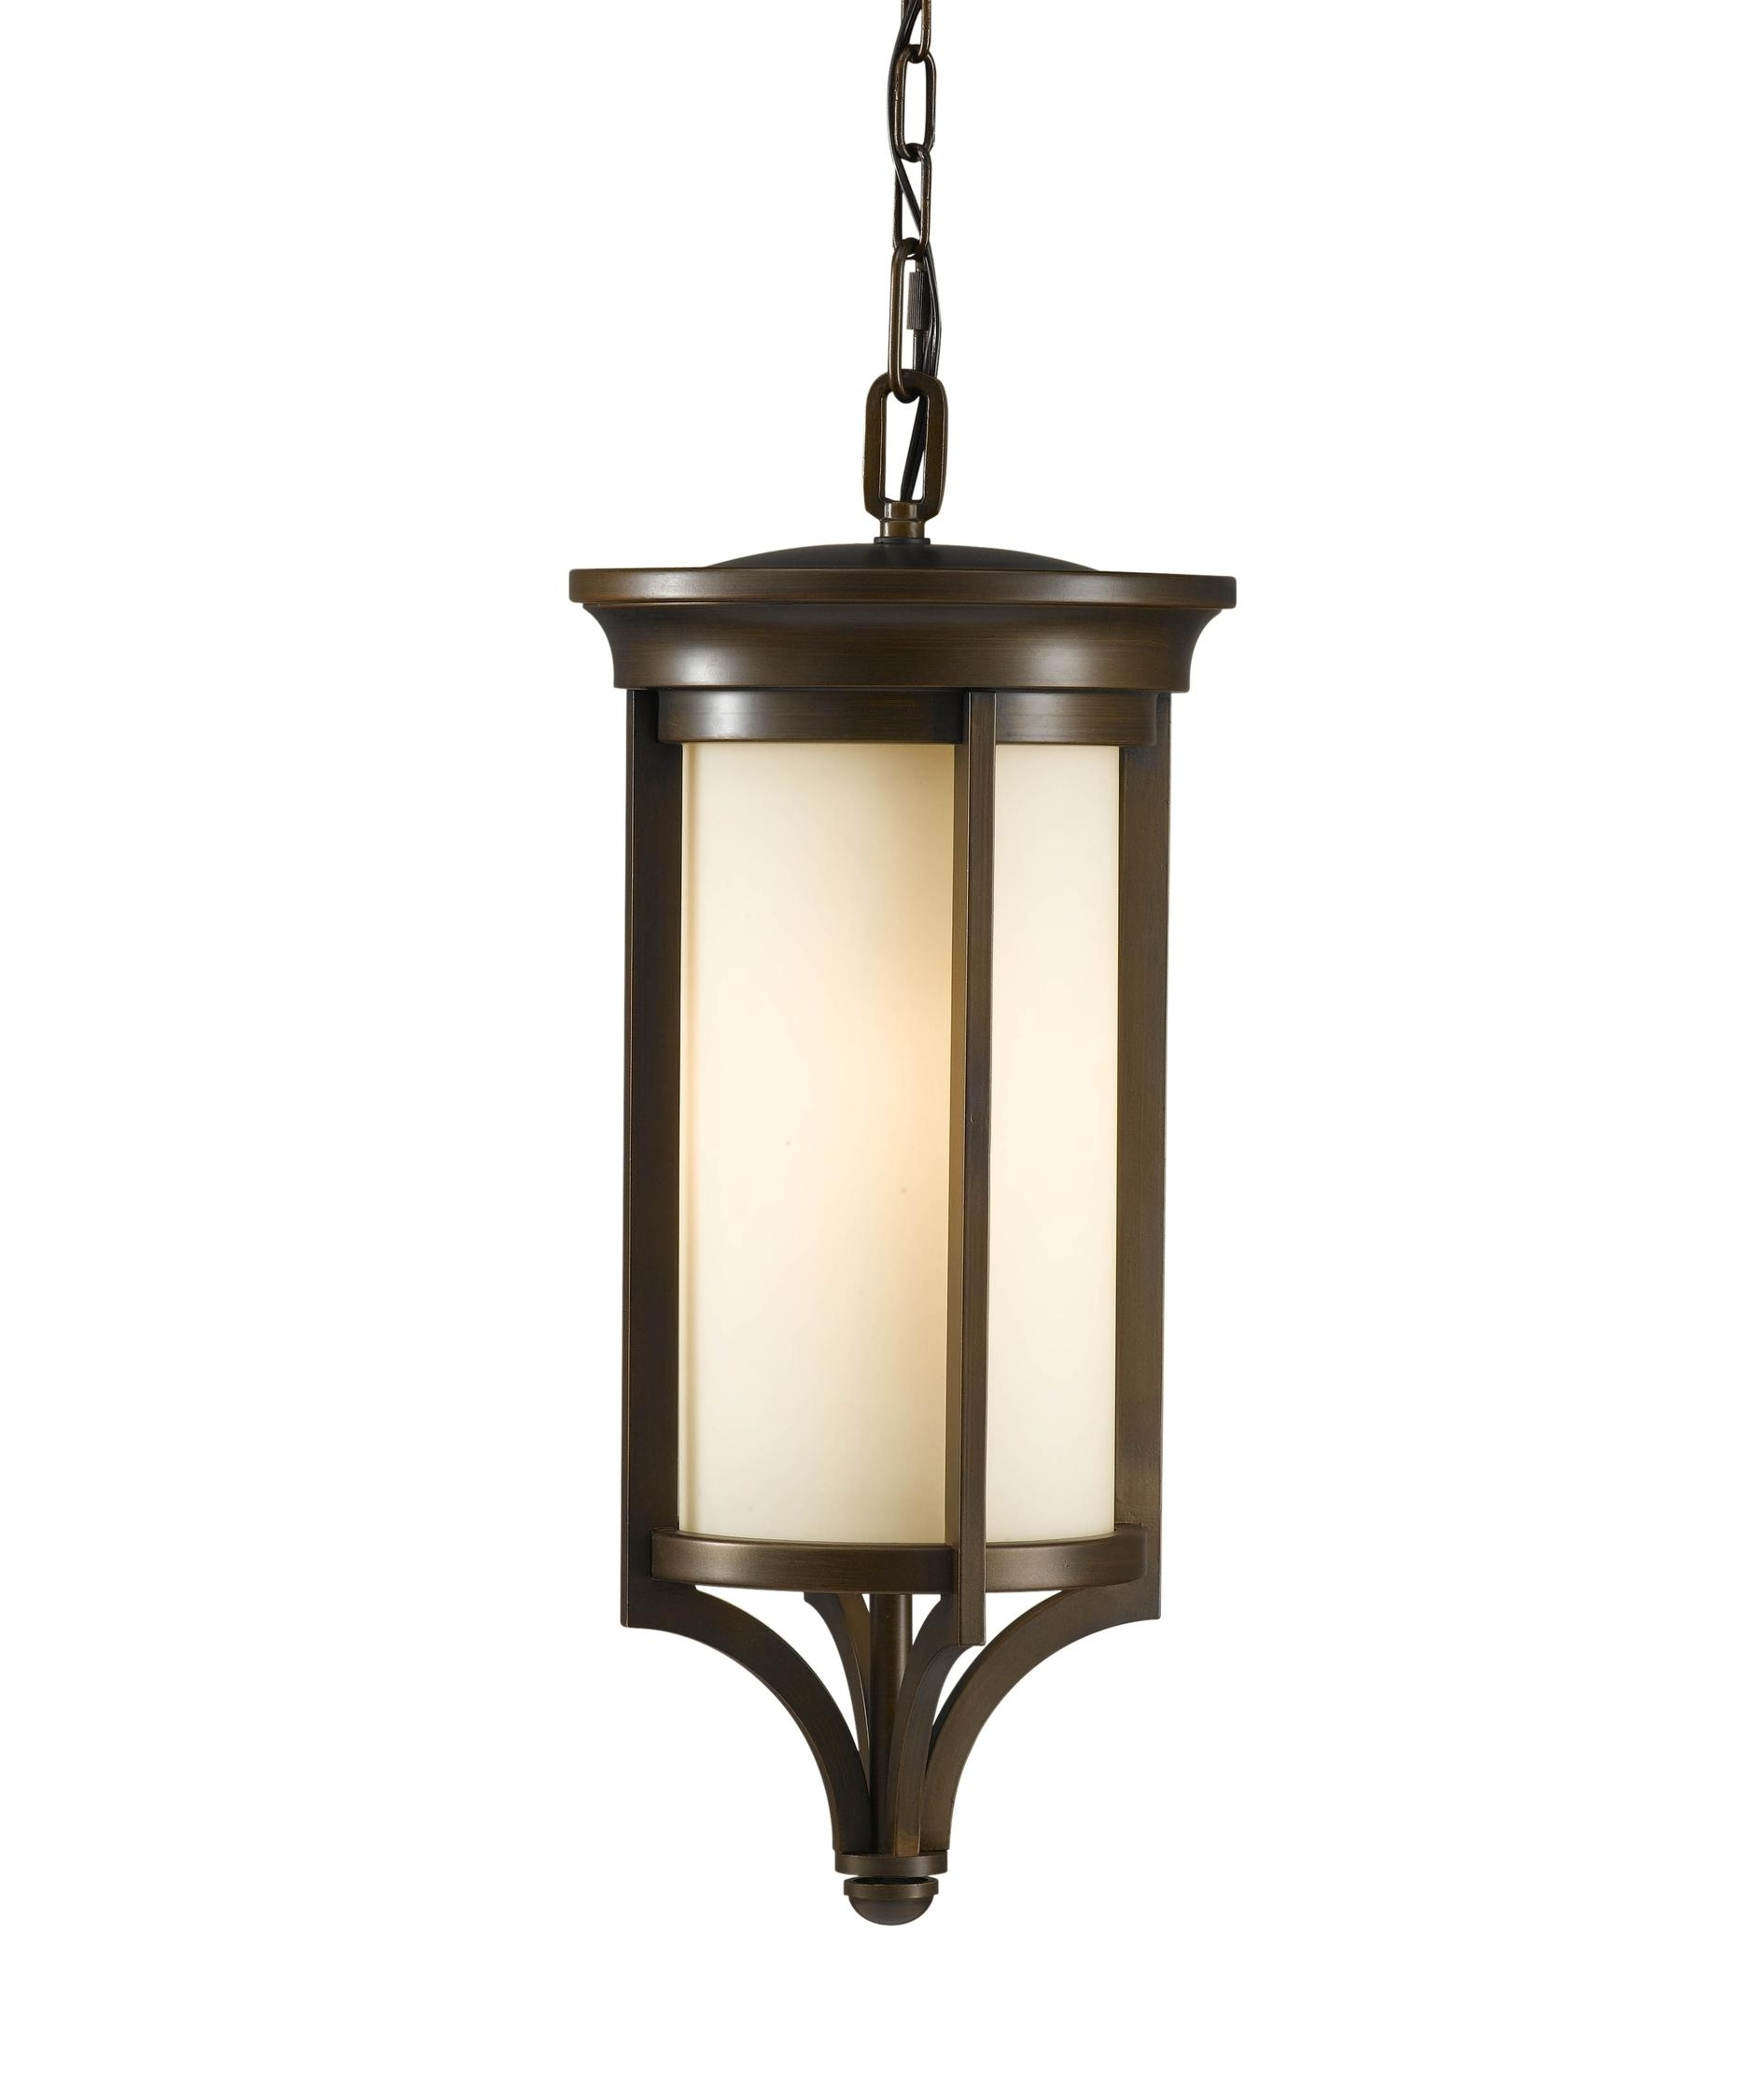 Newest Outdoor Hanging Electric Lanterns With Murray Feiss Ol7511 Merrill 10 Inch Wide 1 Light Outdoor Hanging (View 11 of 20)